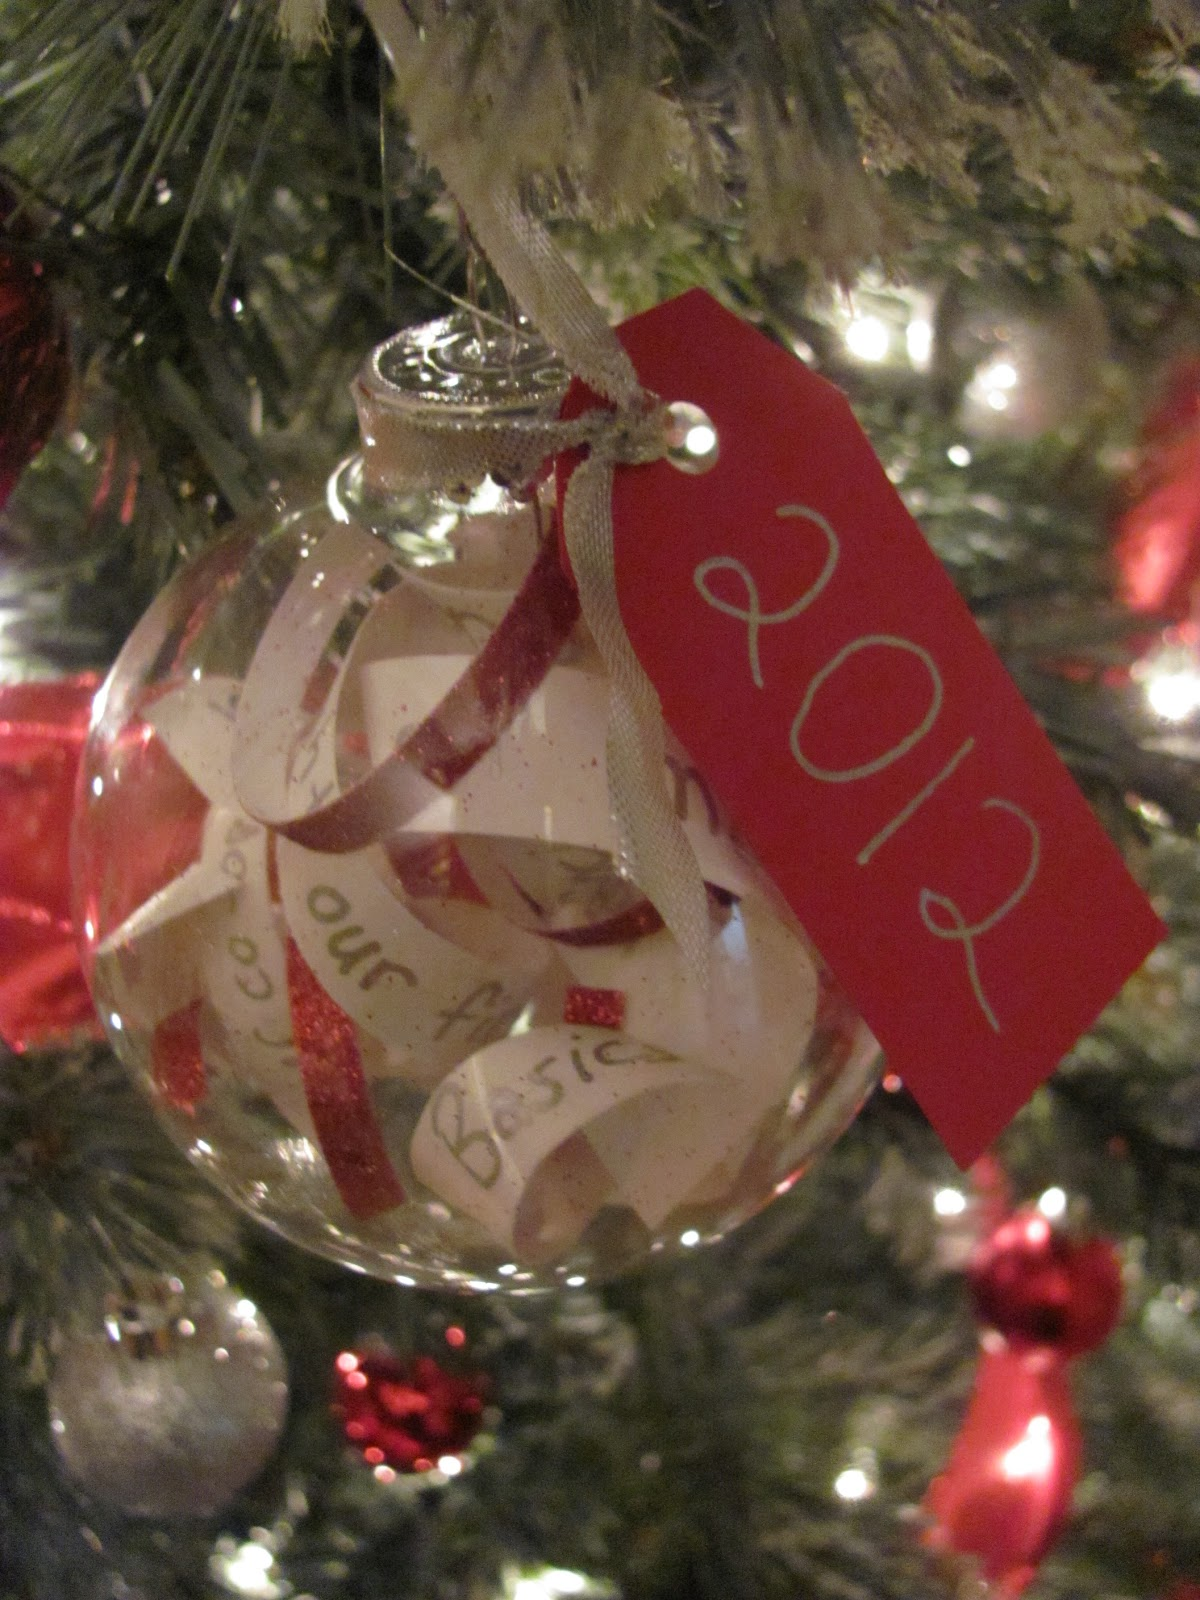 Yearly christmas ornaments - I Also Made An Ornament With Our Wedding Invitation Inside Which Was Inspired By Pinterest Of Course I Also Made A Few More Of These For Wedding Gifts